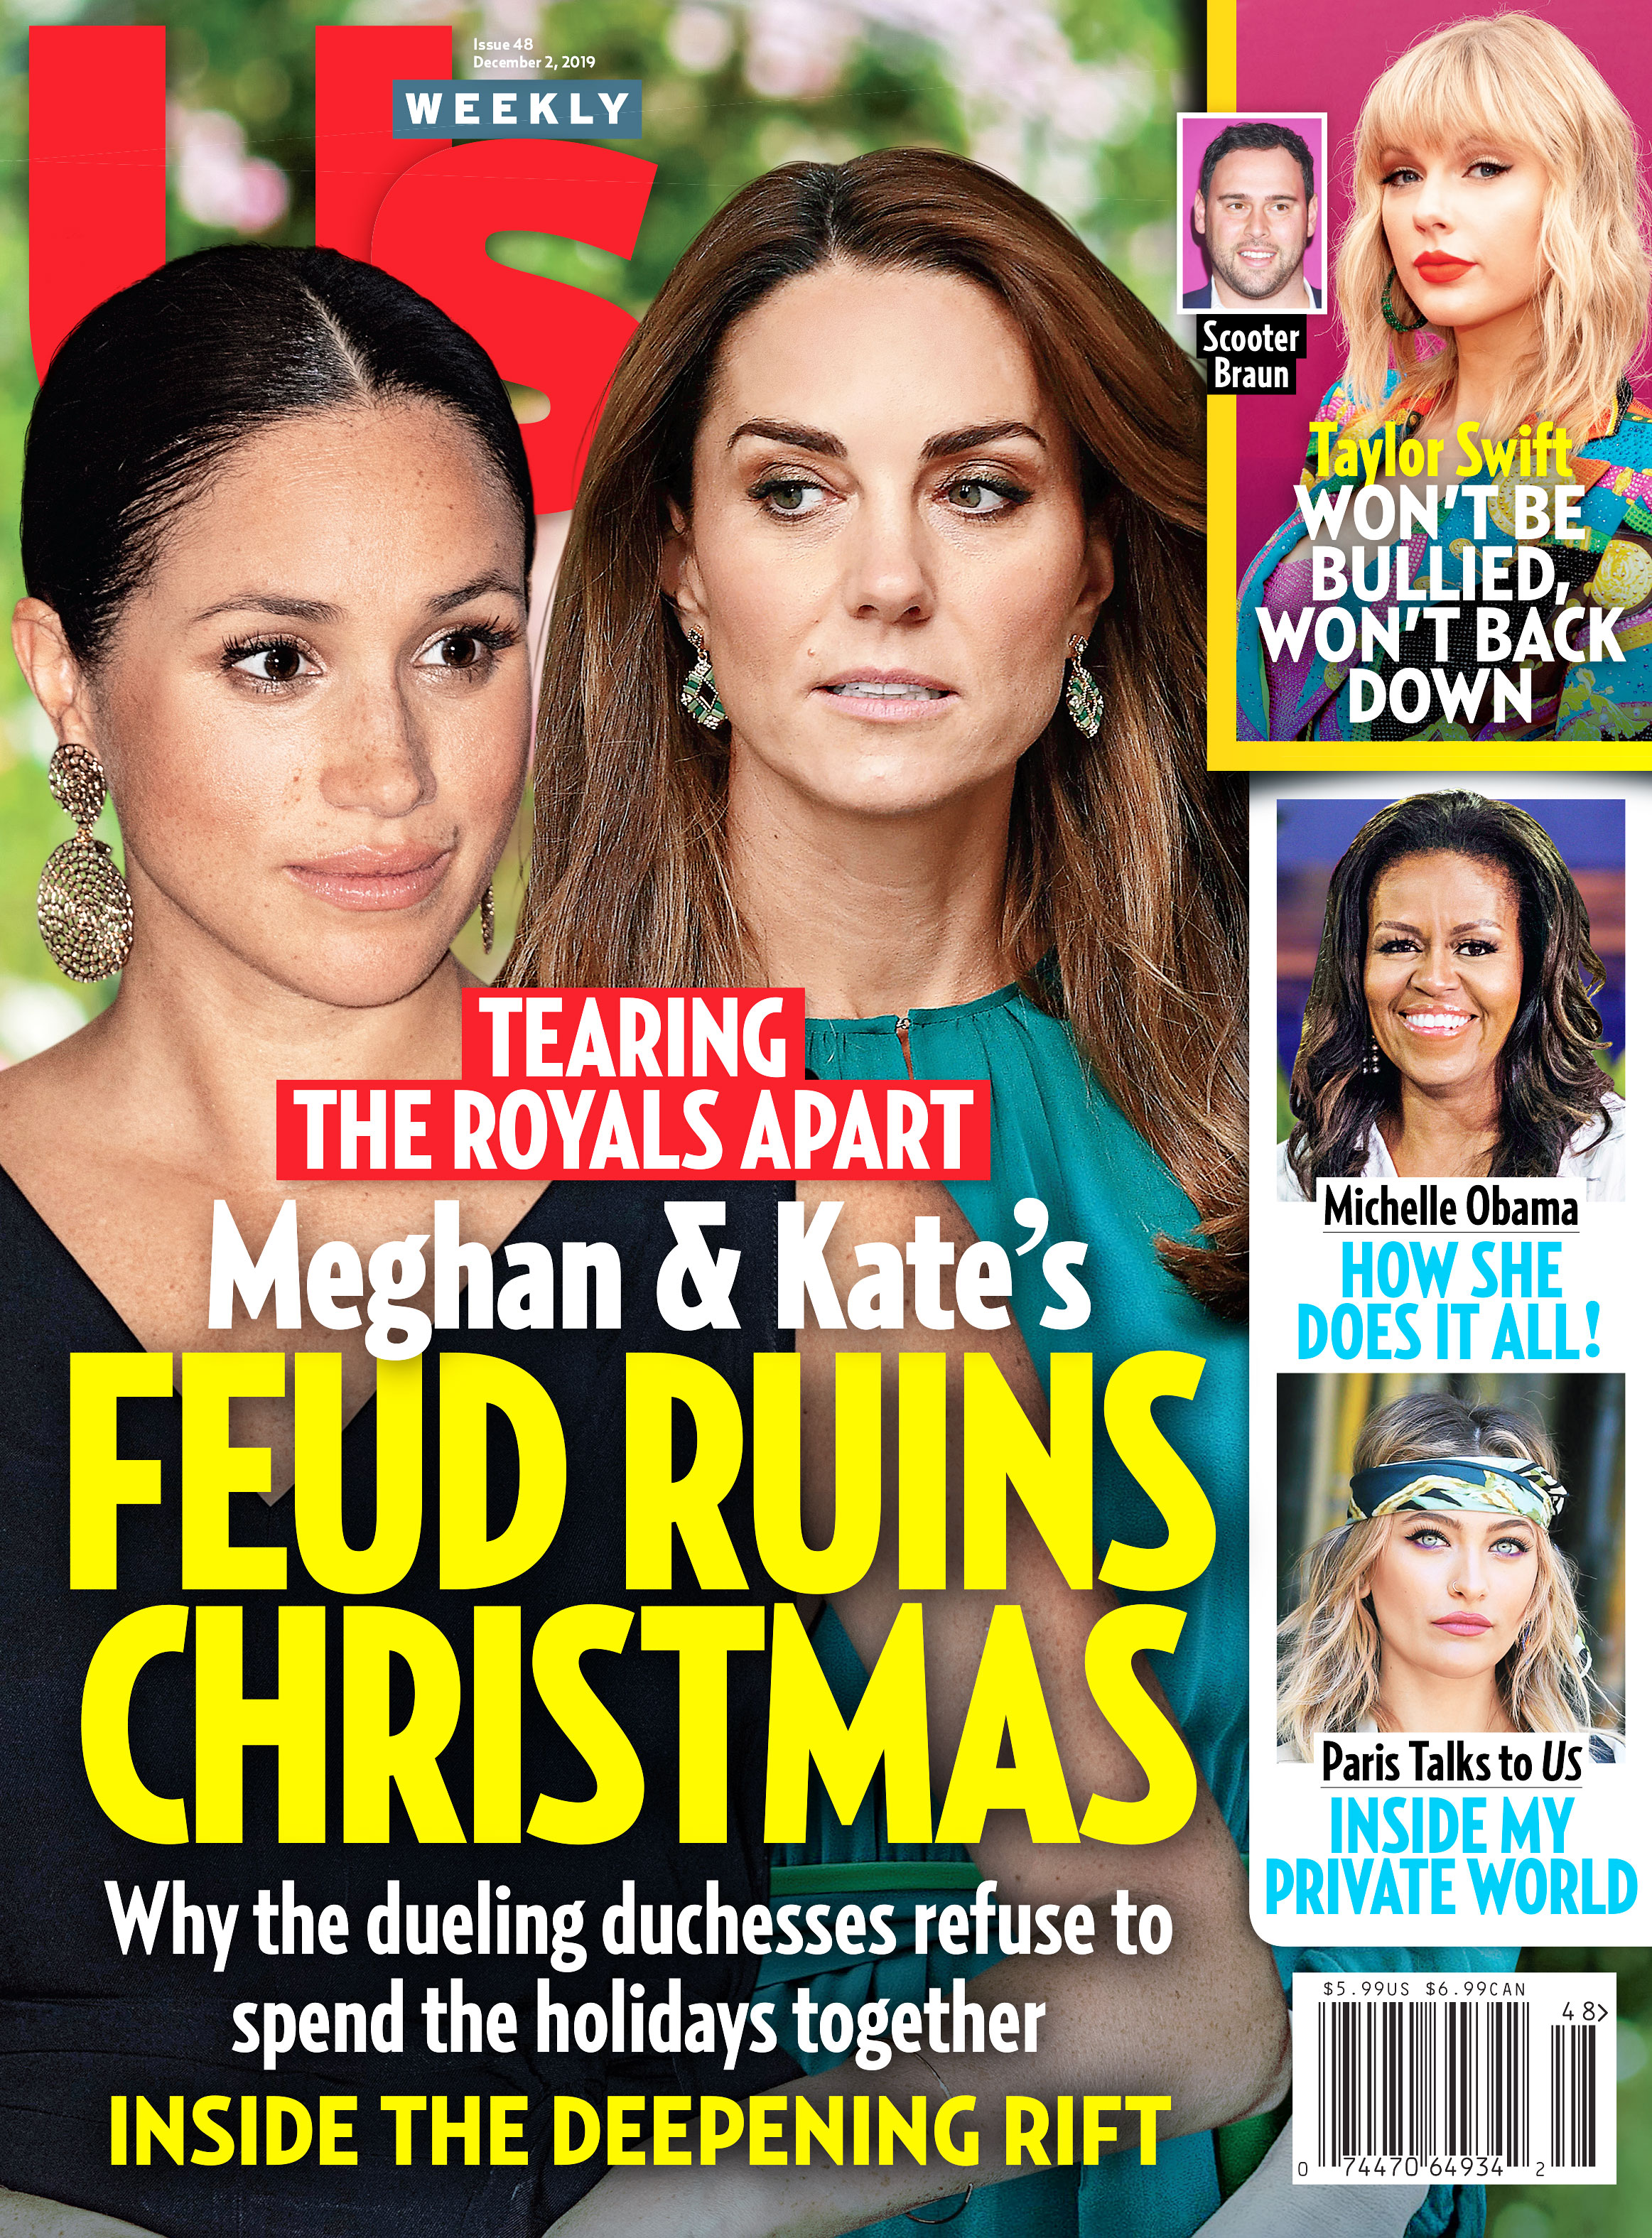 Us Weekly Cover Issue 4819 Duchess Meghan and Duchess Kate Feud Ruins Christmas